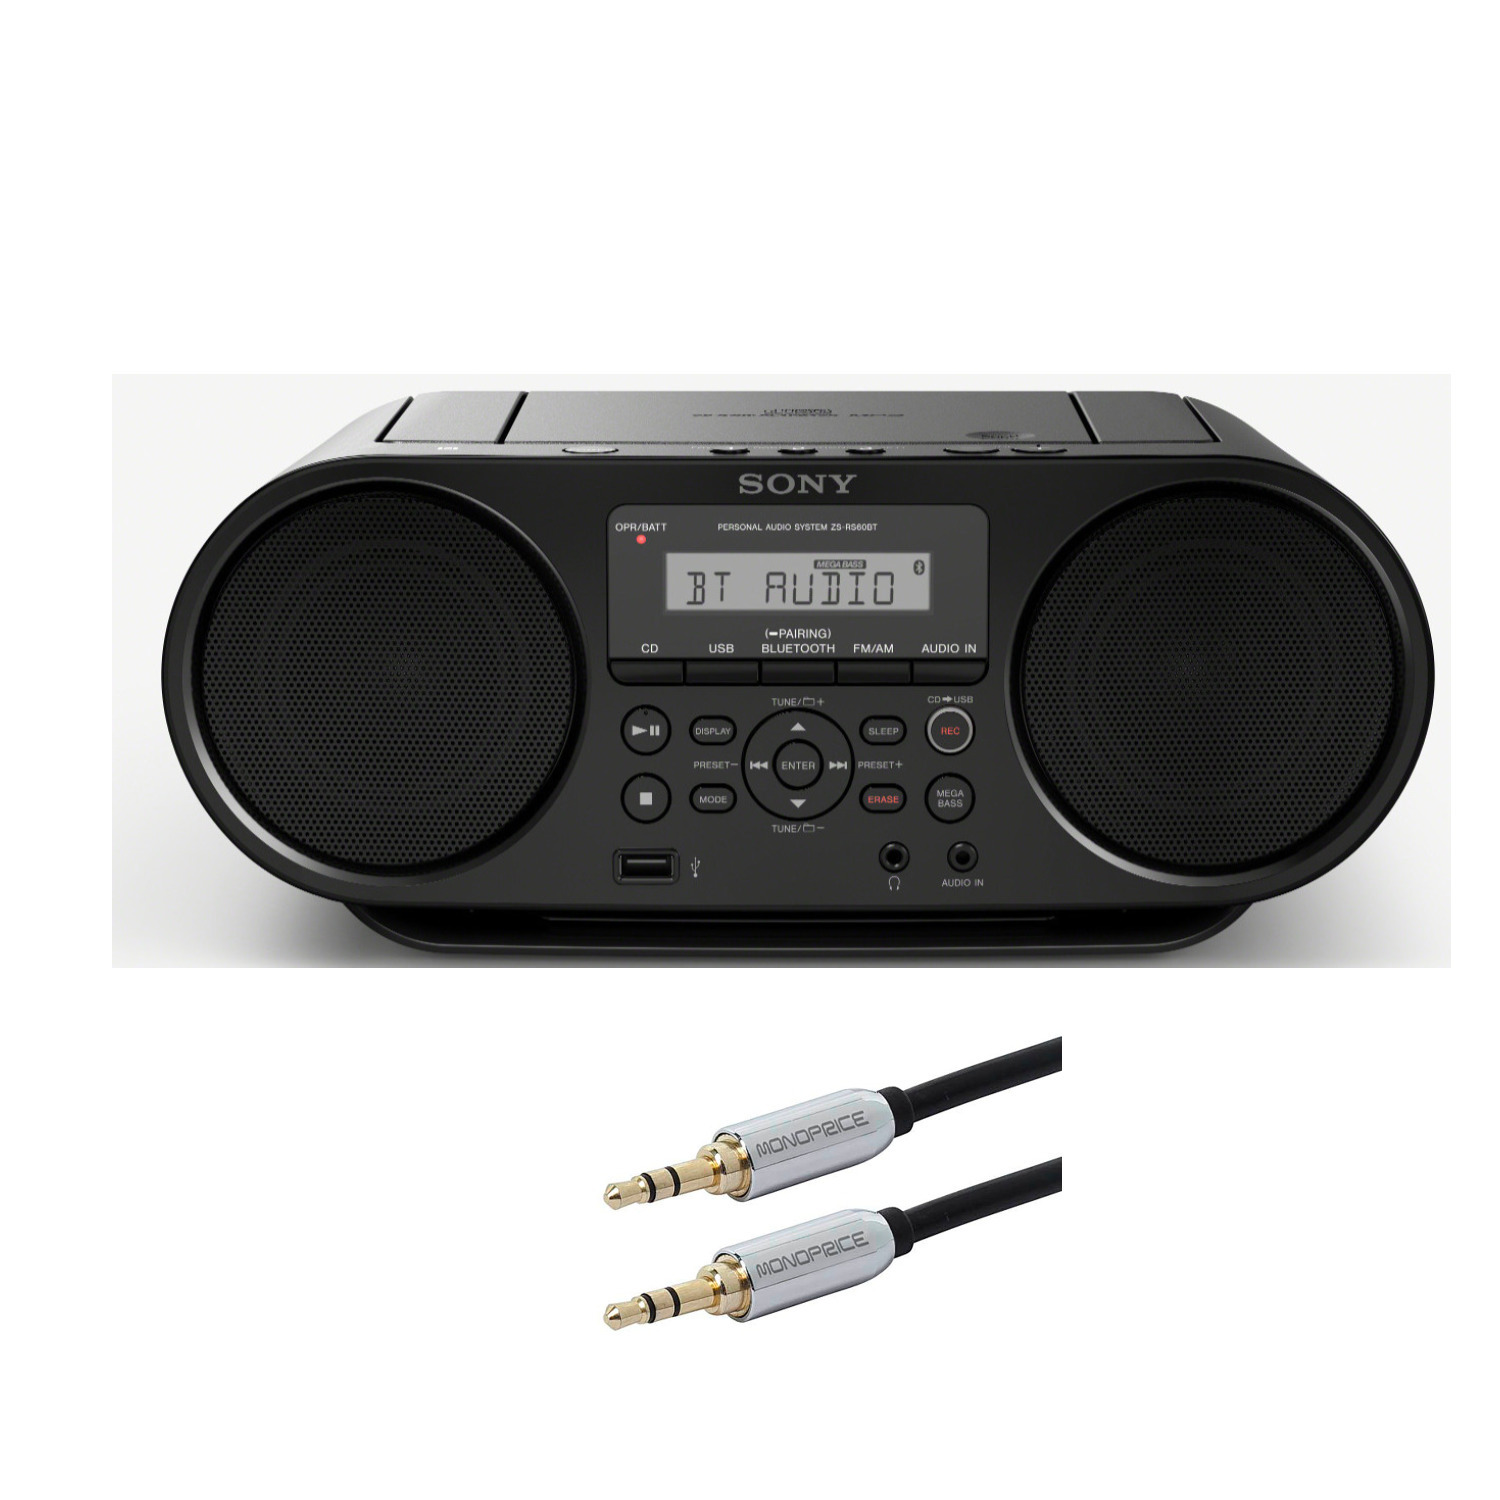 Sony CD Boombox with Bluetooth and NFC (Black) and Monoprice Cable Bundle